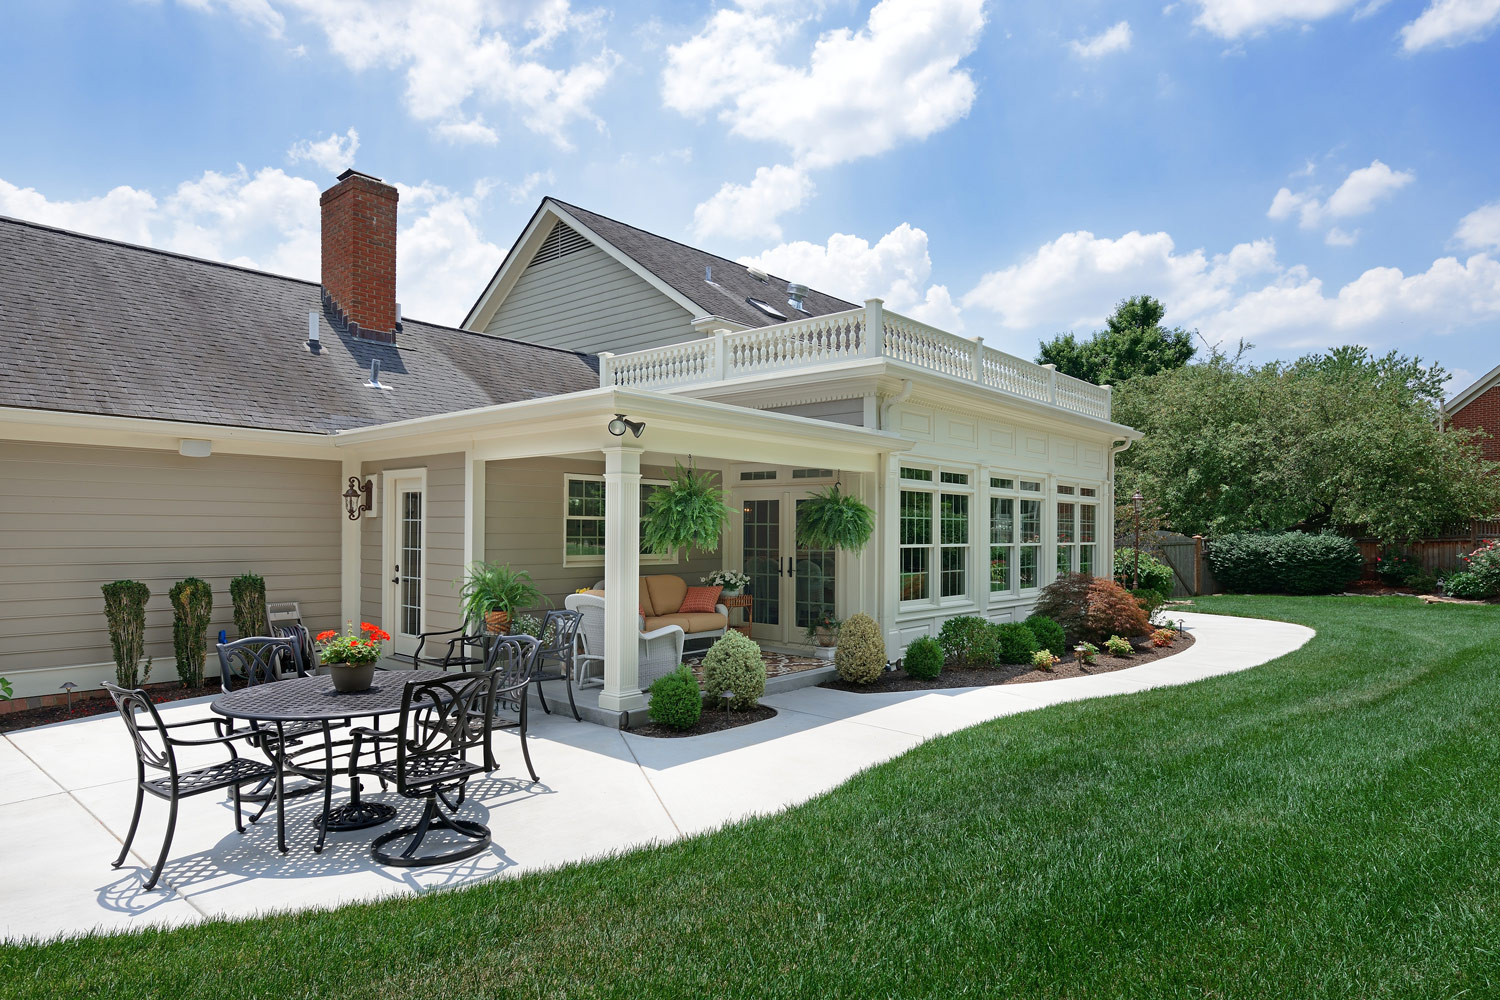 BACK Construction awarded Best of Houzz for design and service.